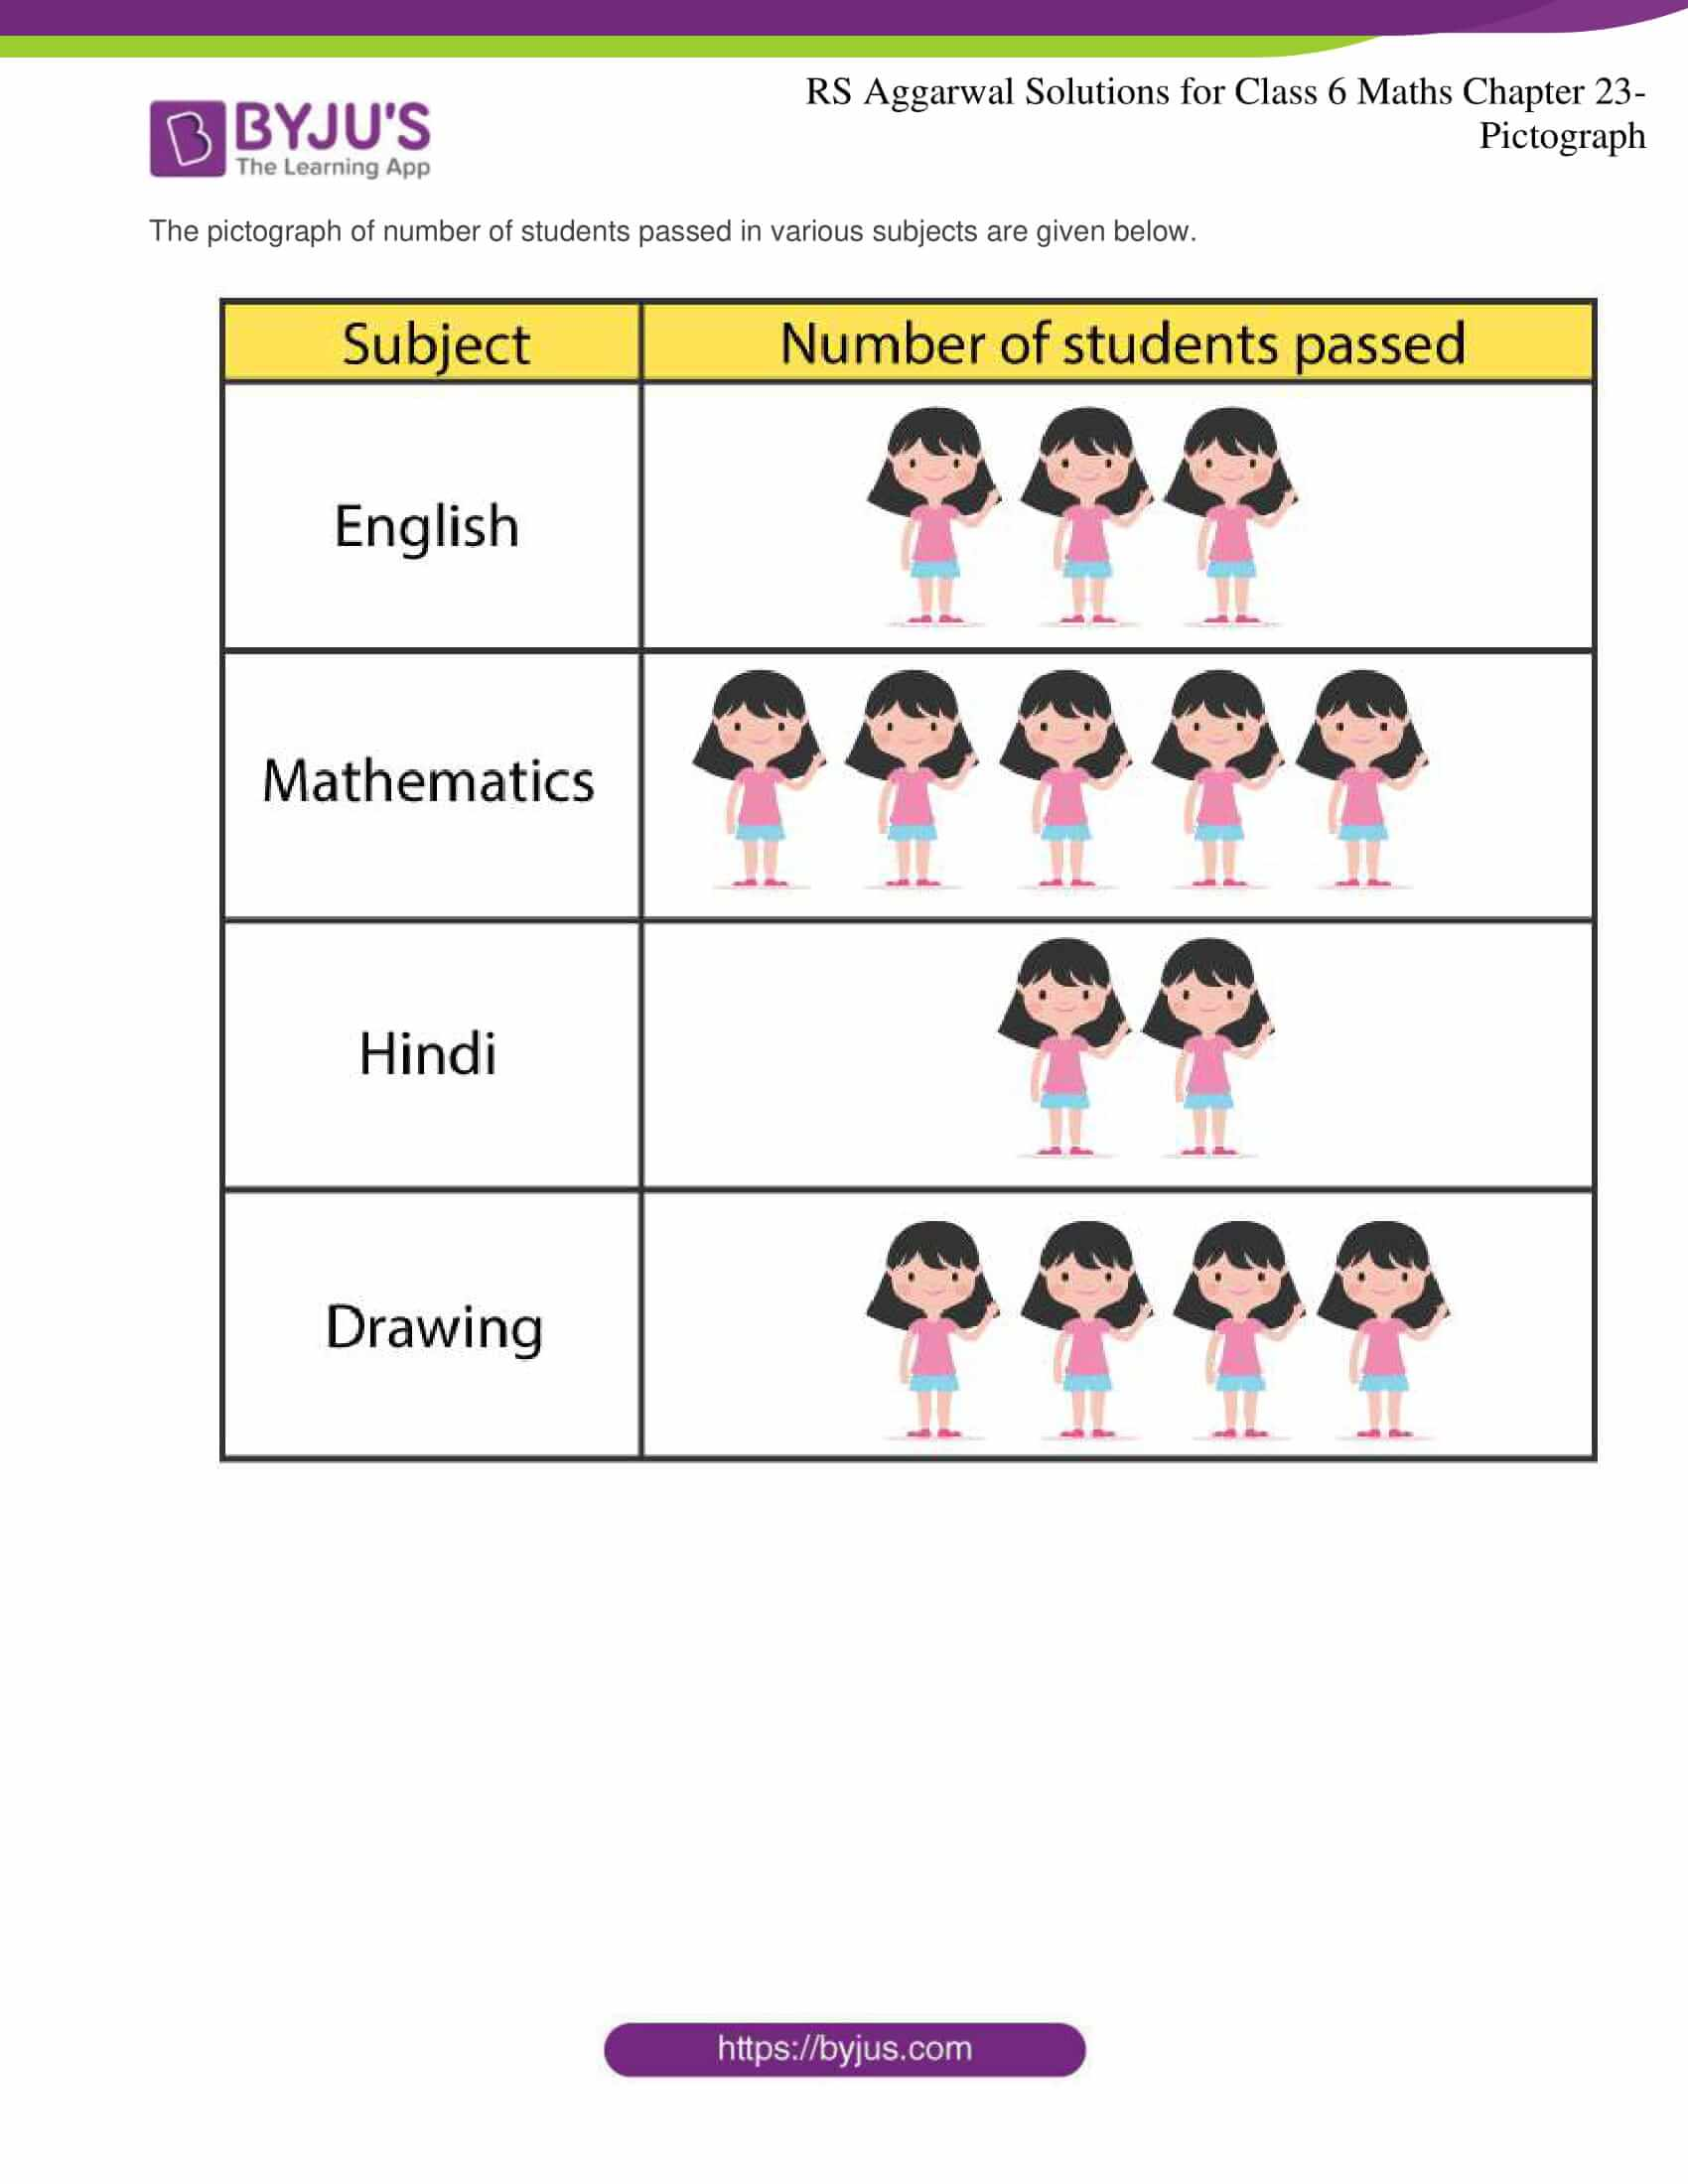 rs aggarwal solutions for class 6 maths chapter 23 3